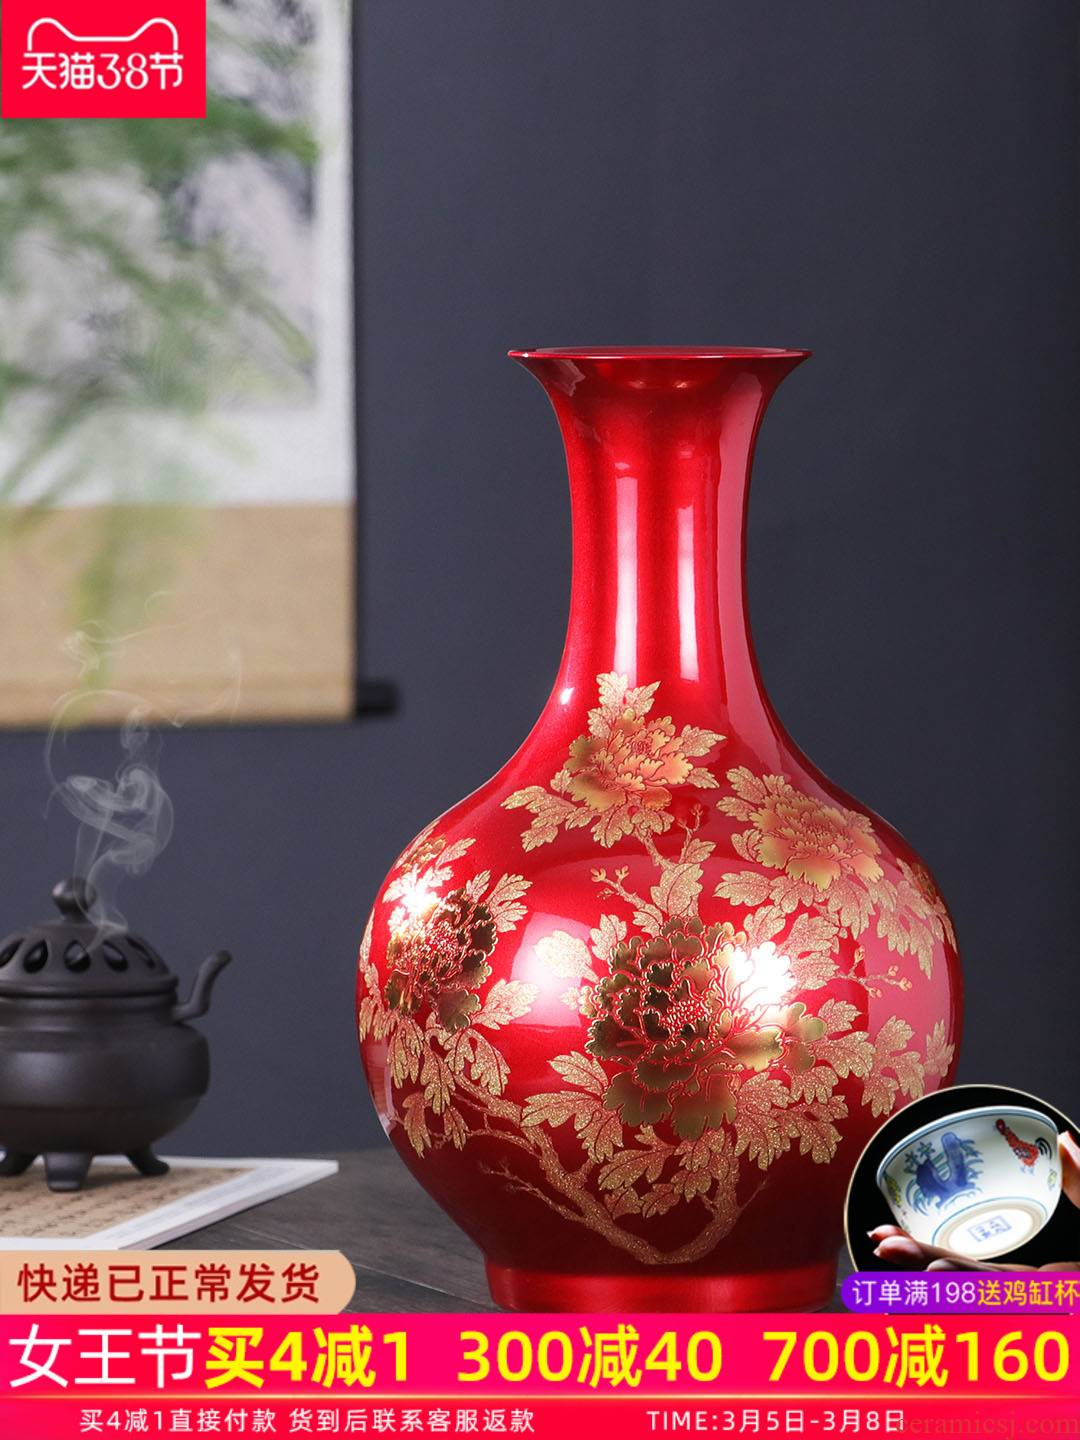 Jingdezhen ceramics vase furnishing articles China red flower arranging the sitting room of Chinese style household decorations arts and crafts porcelain